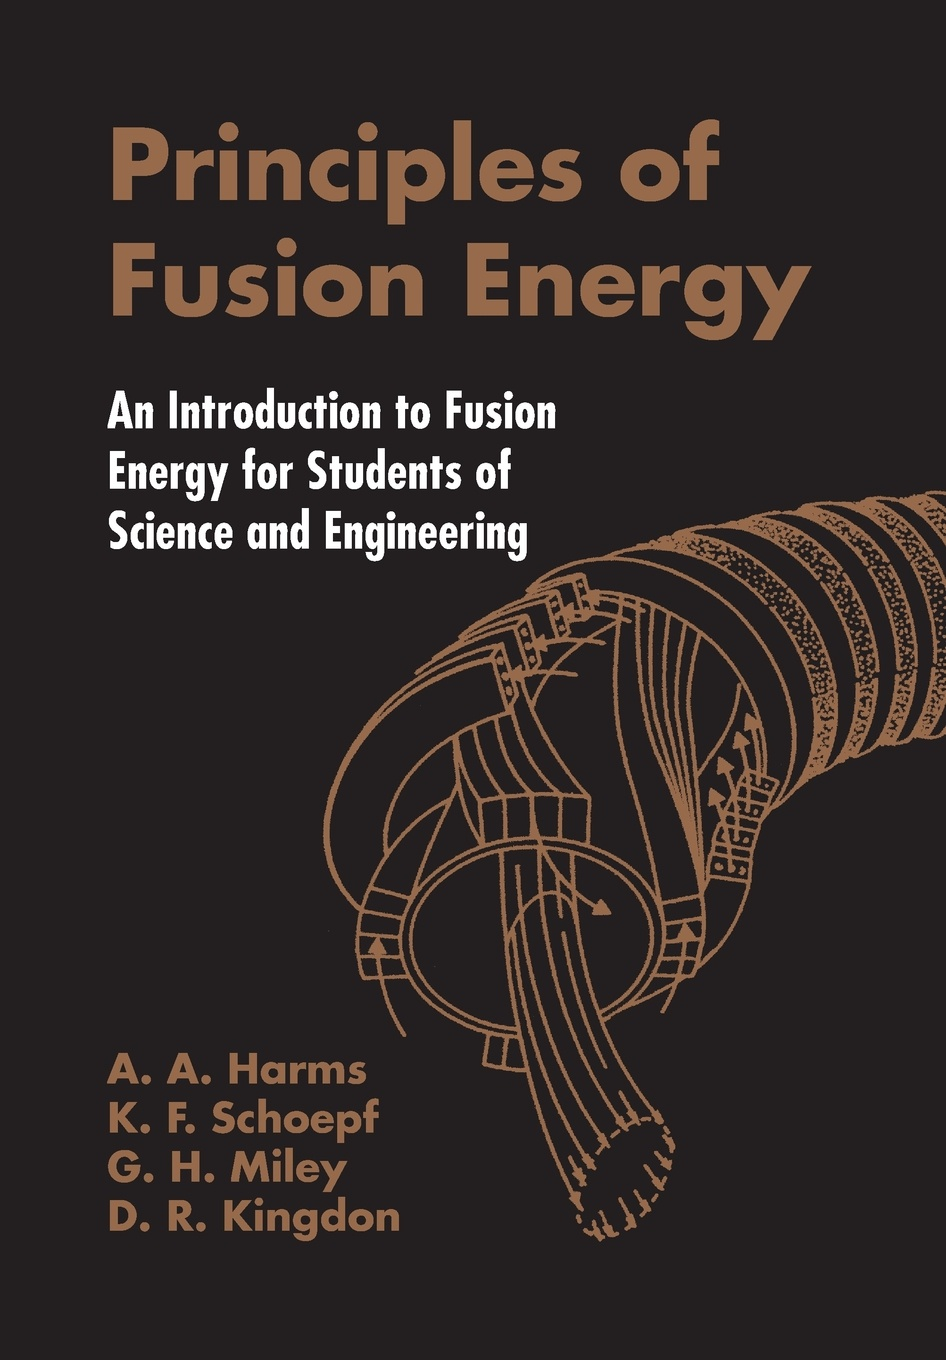 A A Harms, D R Kingdon, K F Schoepf PRINCIPLES OF FUSION ENERGY. AN INTRODUCTION TO FUSION ENERGY FOR STUDENTS OF SCIENCE AND ENGINEERING yahia zare mehrjerdi english for industrial engineering students